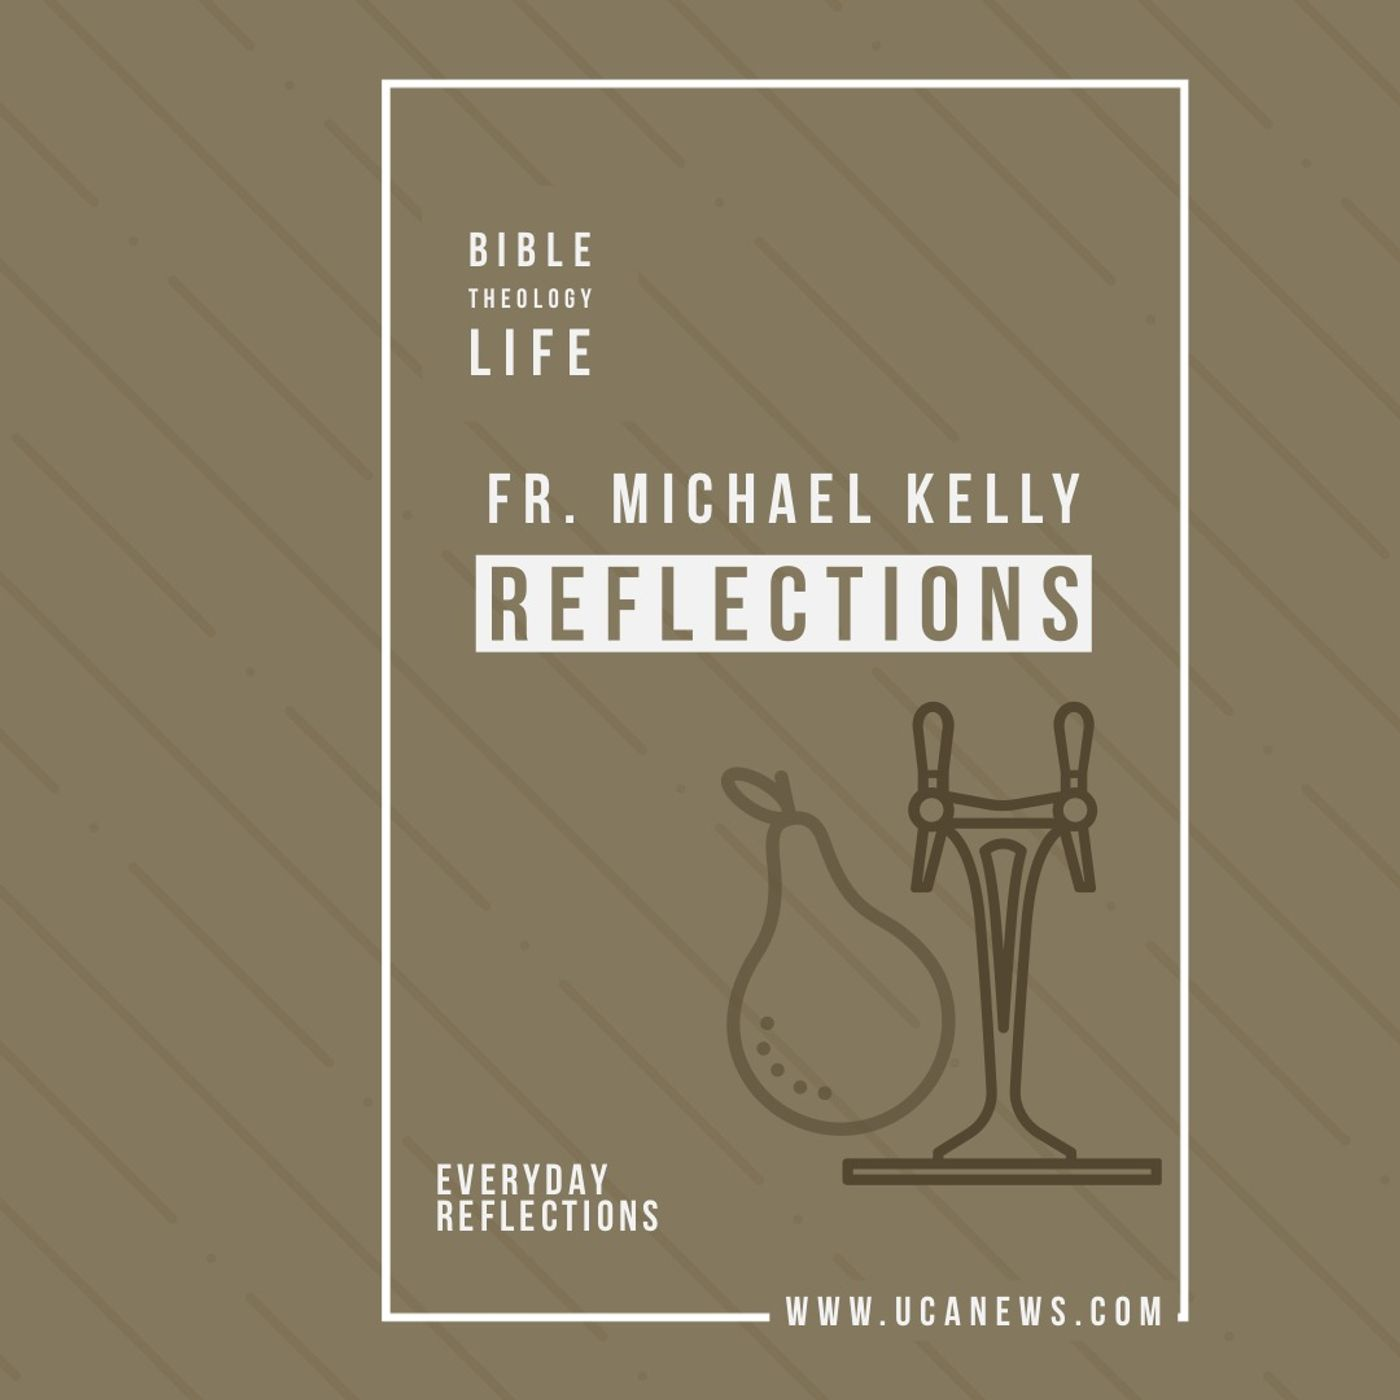 Reflections with Fr. Michael Kelly - Tuesday 23 Feb, 2021